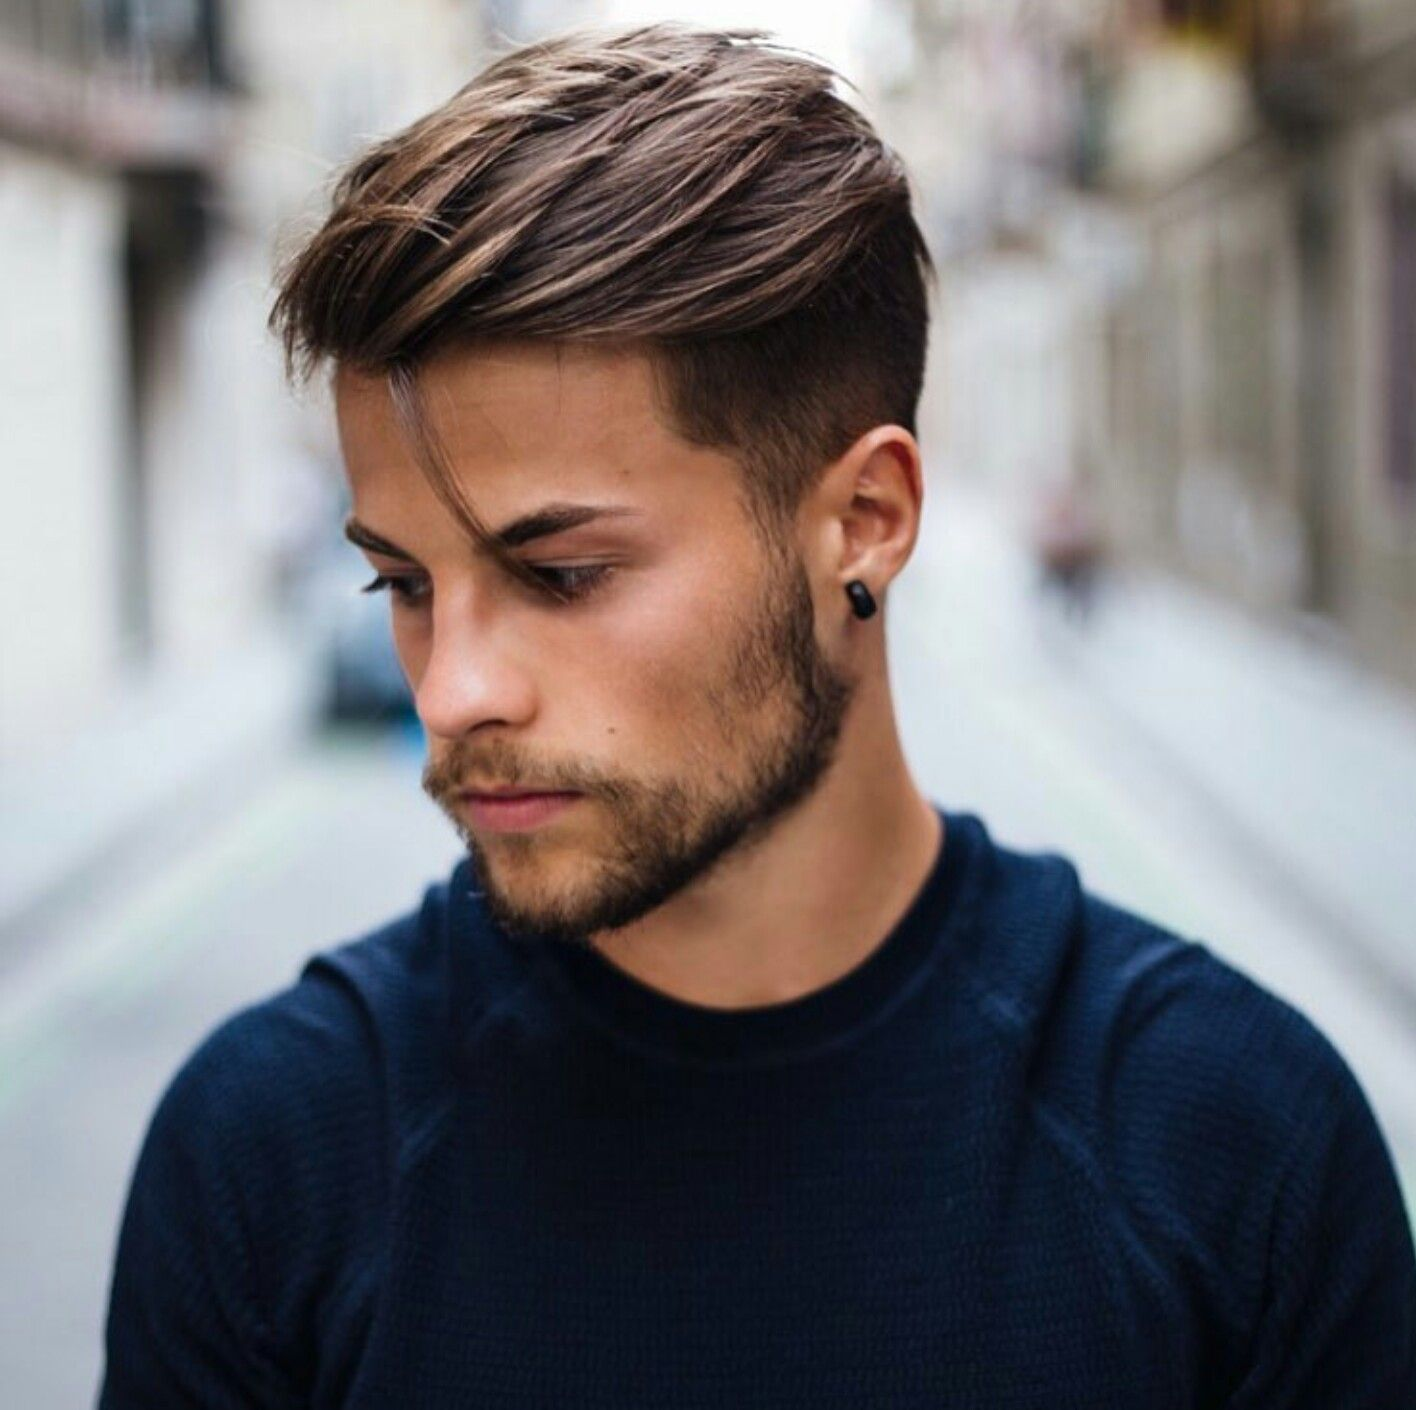 Mens haircuts with beards pin by emma dunn on menus hairstyles  pinterest  haircuts mens